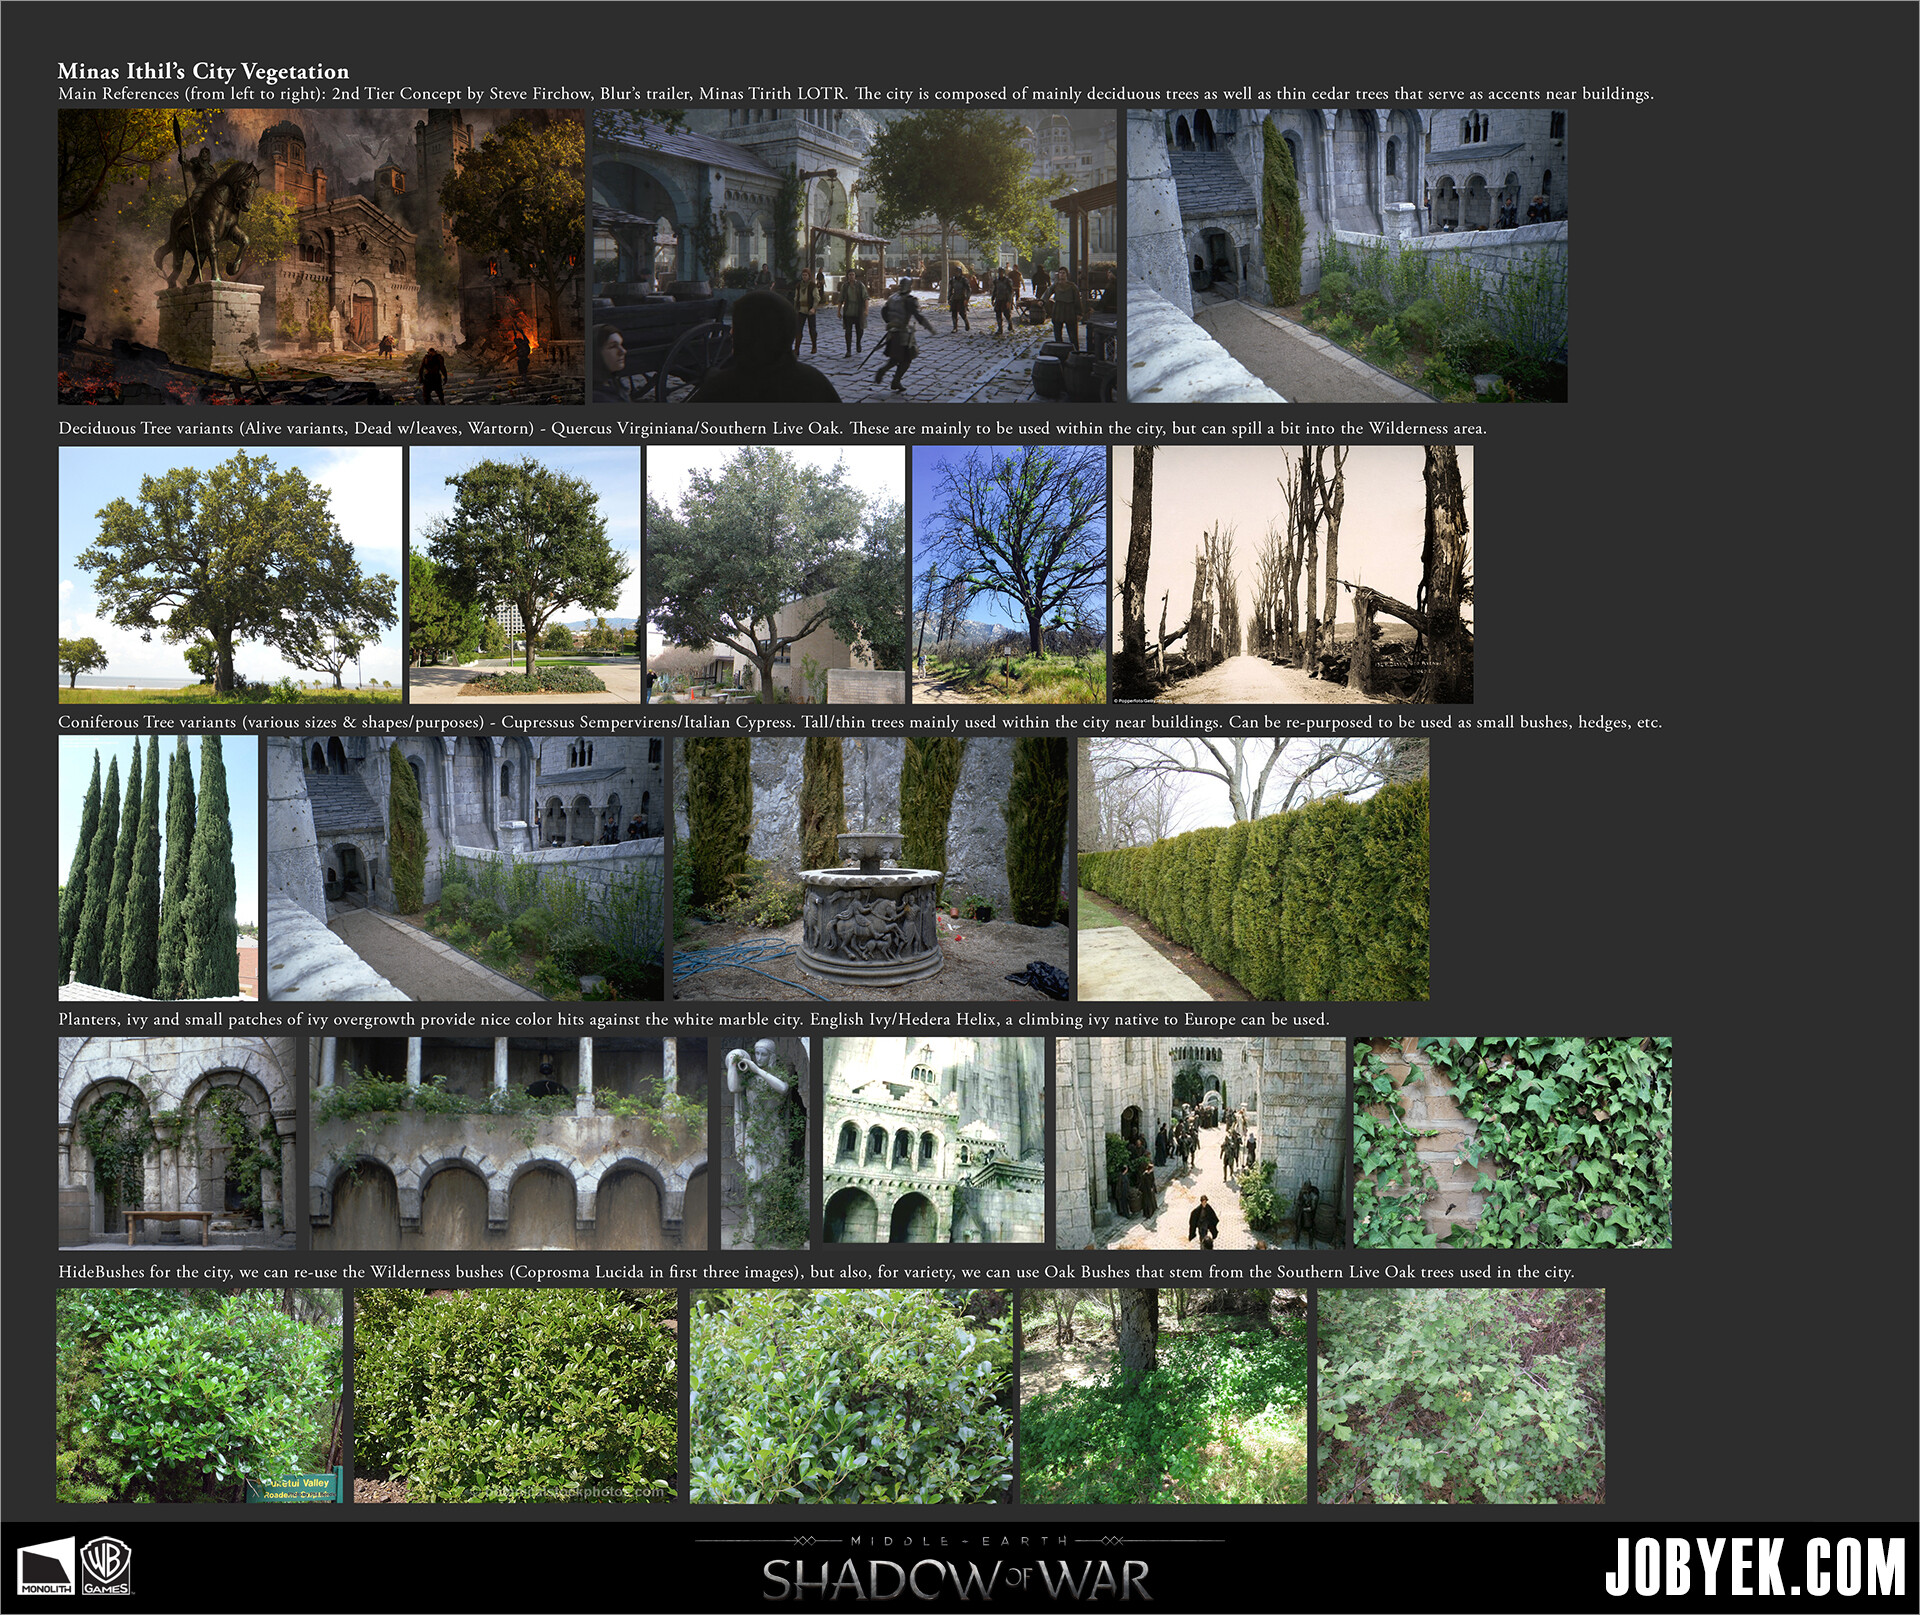 Stylesheet for Minas Ithil's City Vegetation